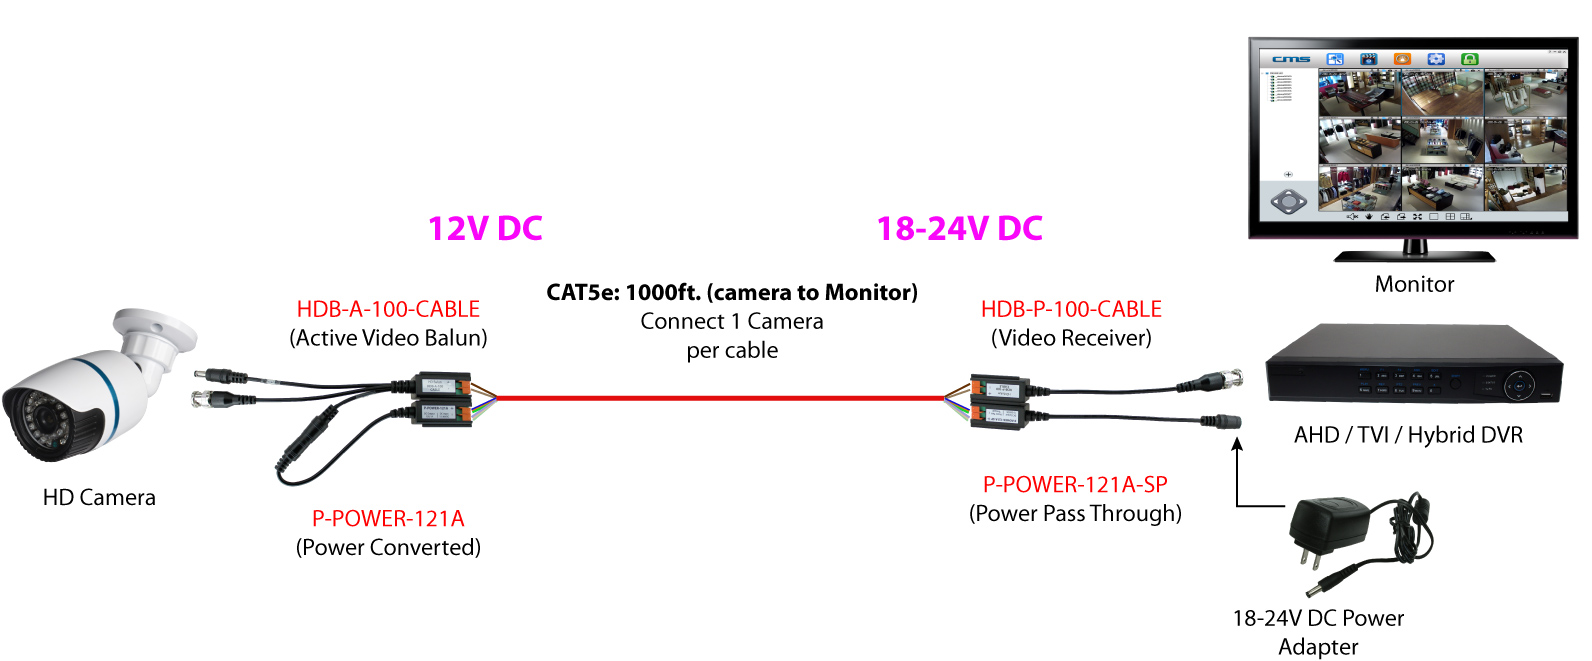 hight resolution of cctv 12v wiring diagram wiring diagram yer cctv 12v wiring diagram